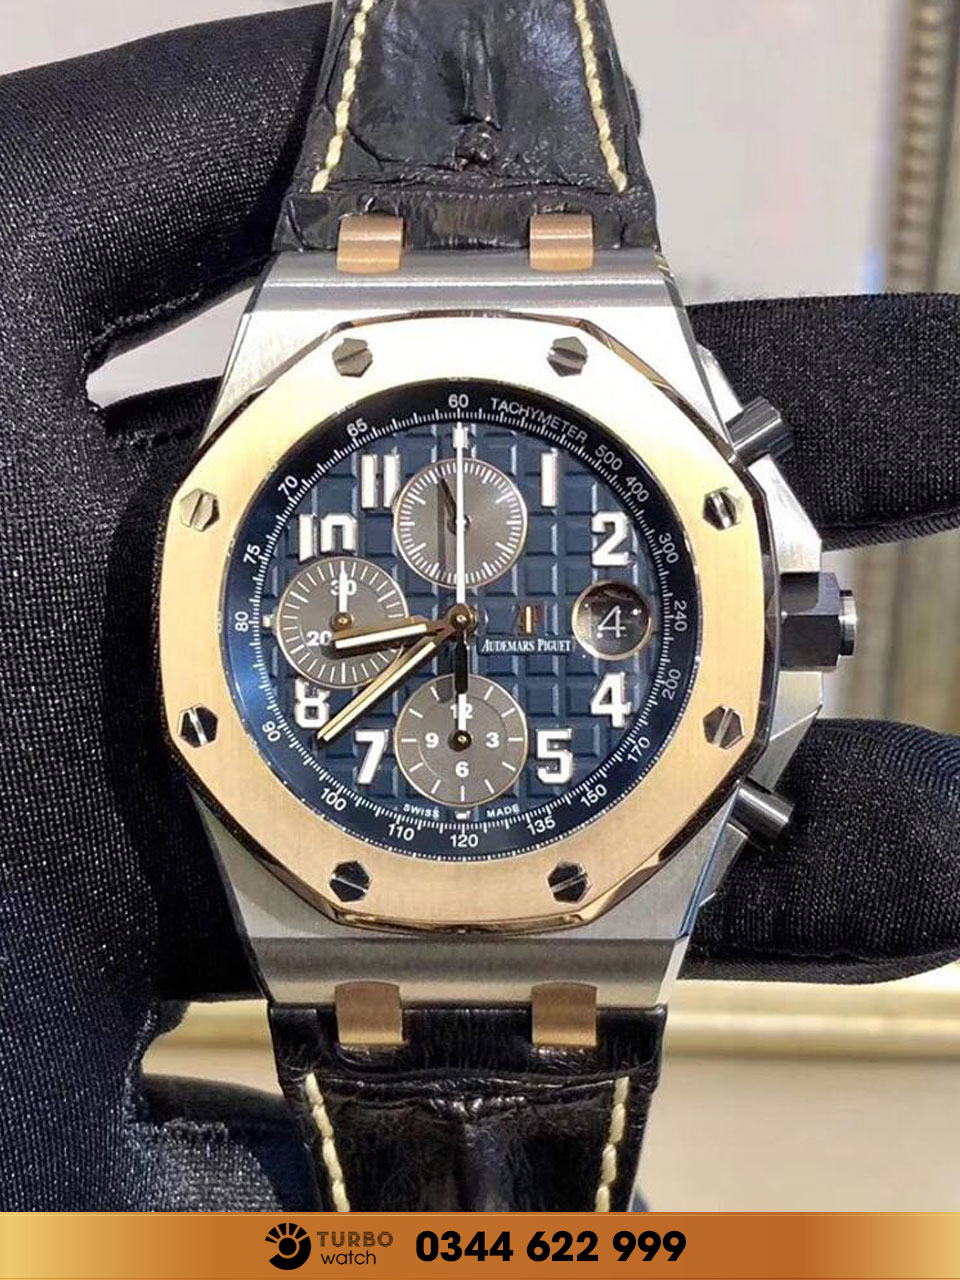 Audemas piguet Royal Oak offshore chronograph fake 1-1 siêu cấp